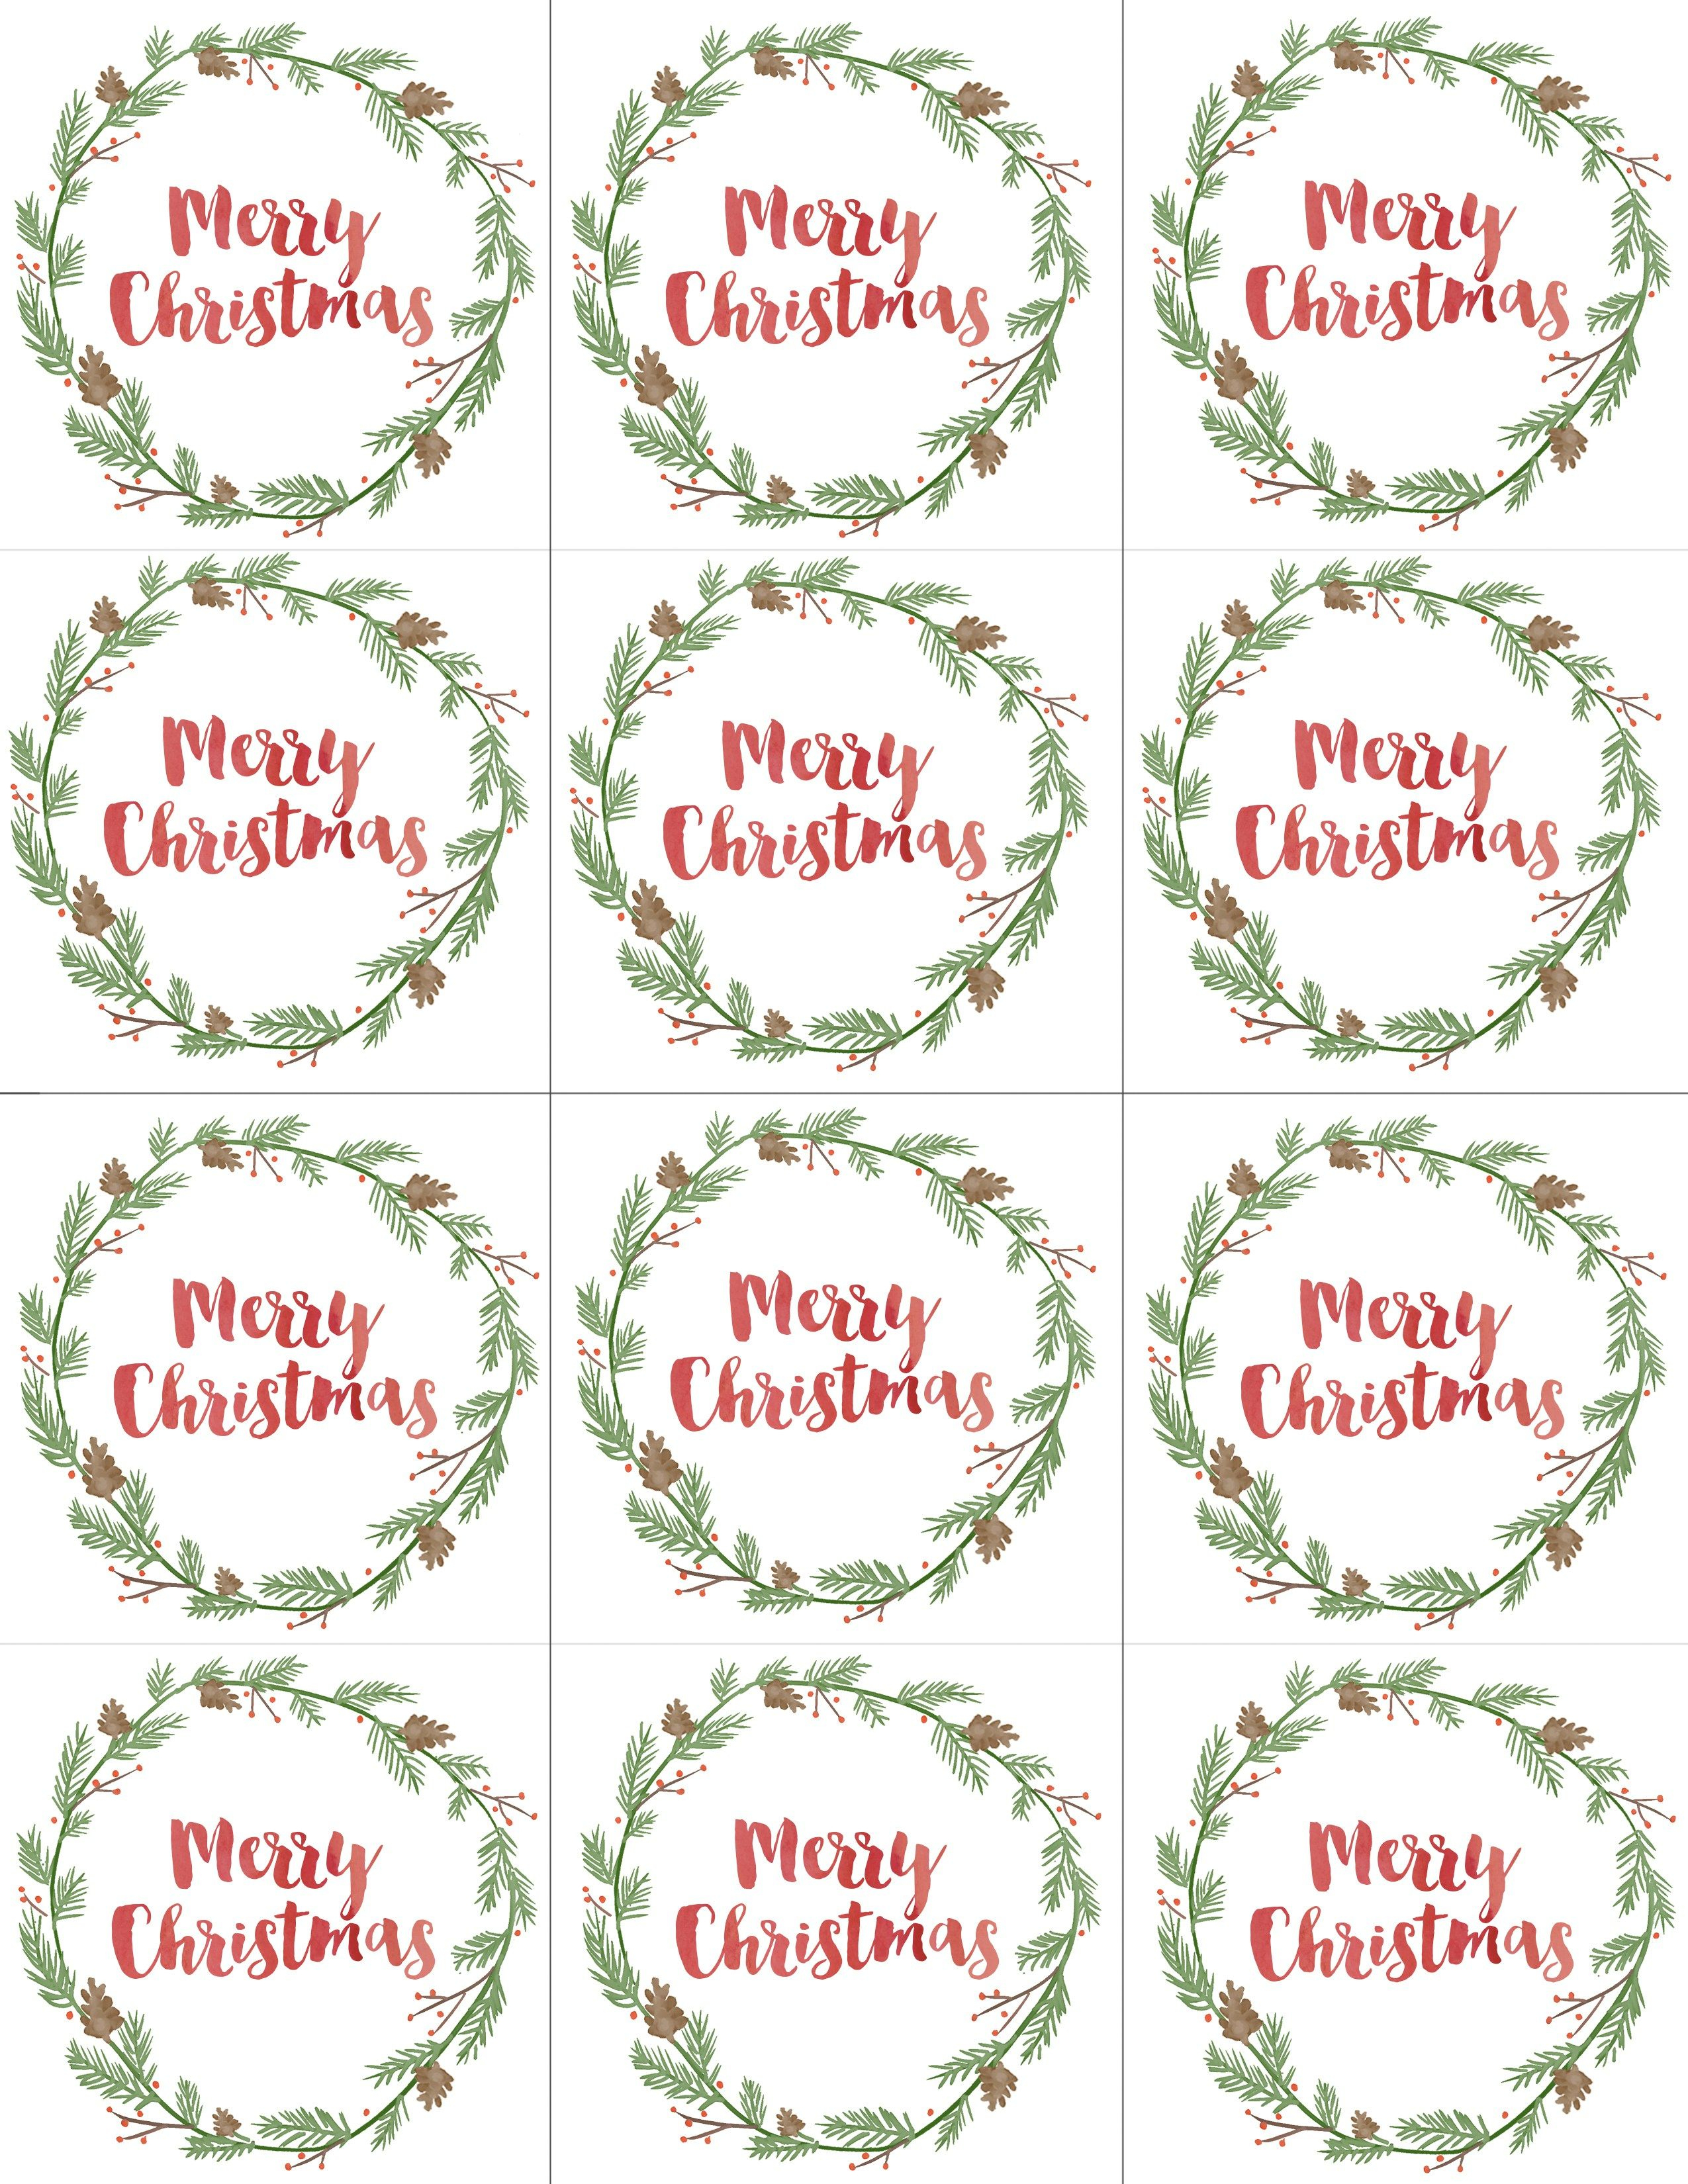 Hand Painted Gift Tags Free Printable   Christmas   Christmas Gift - Free Printable Christmas Tags